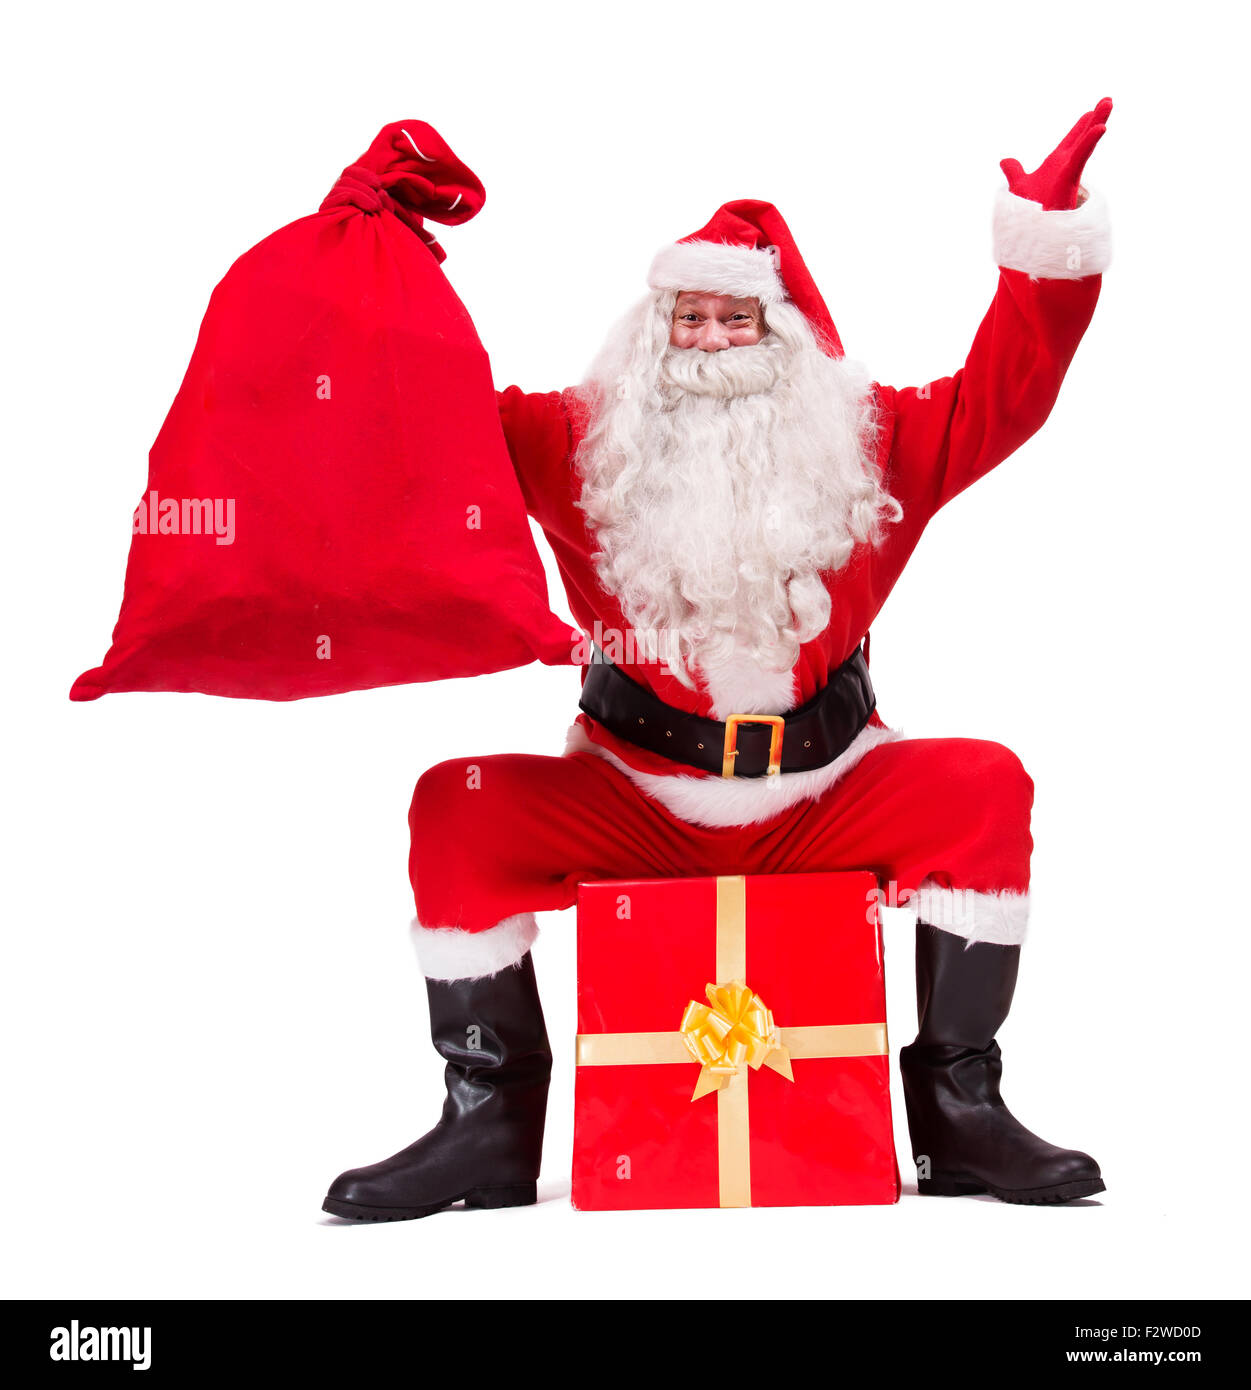 Santa Claus shows Christmas gift isolated on white background